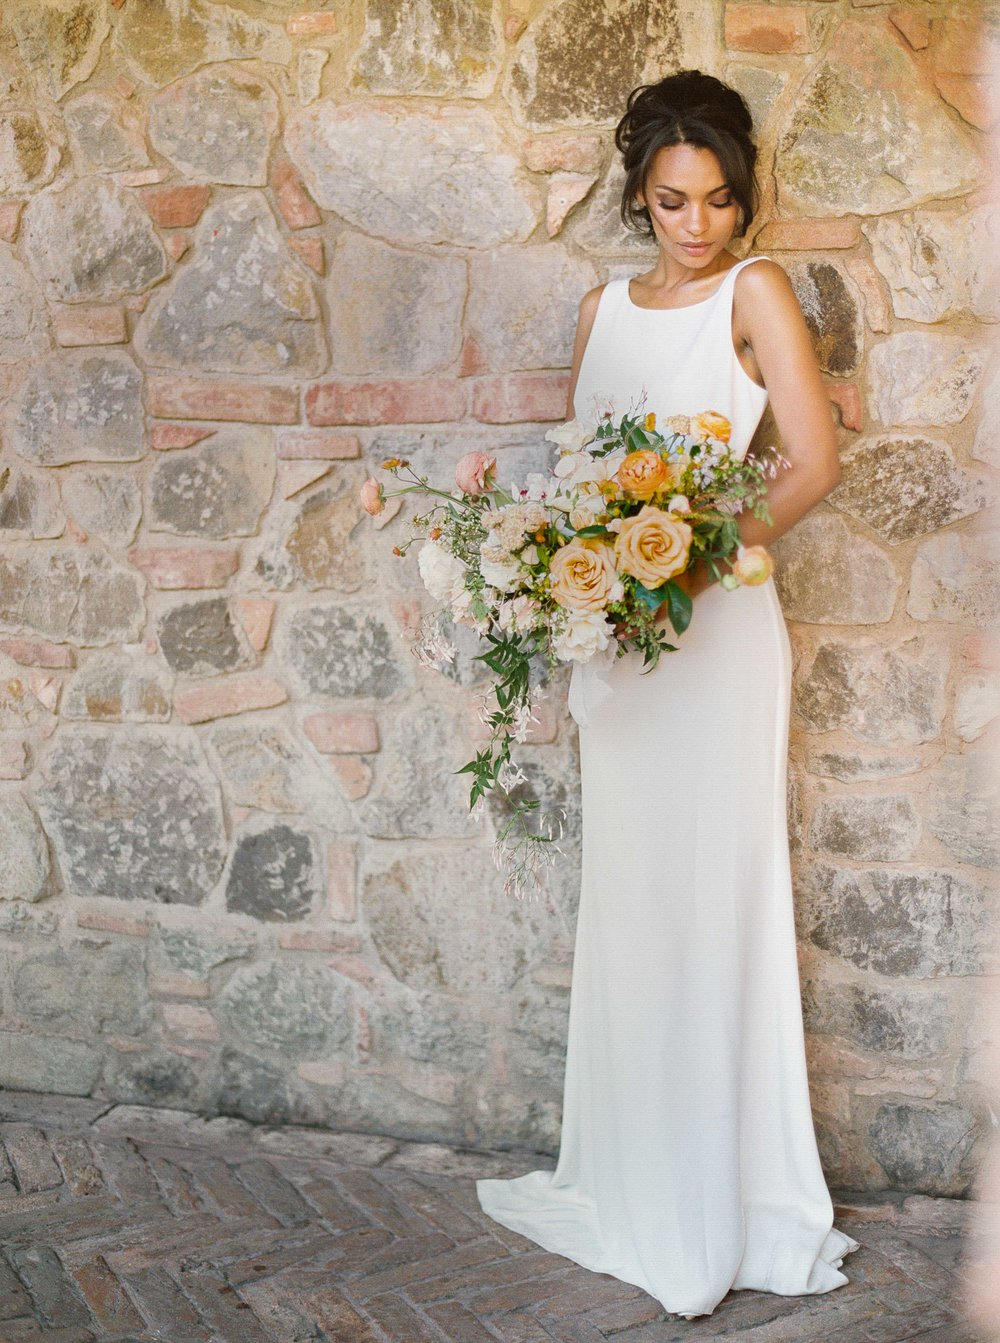 027napa_wedding_photographer_and_videographer_destination_and_elopement_photography.jpg